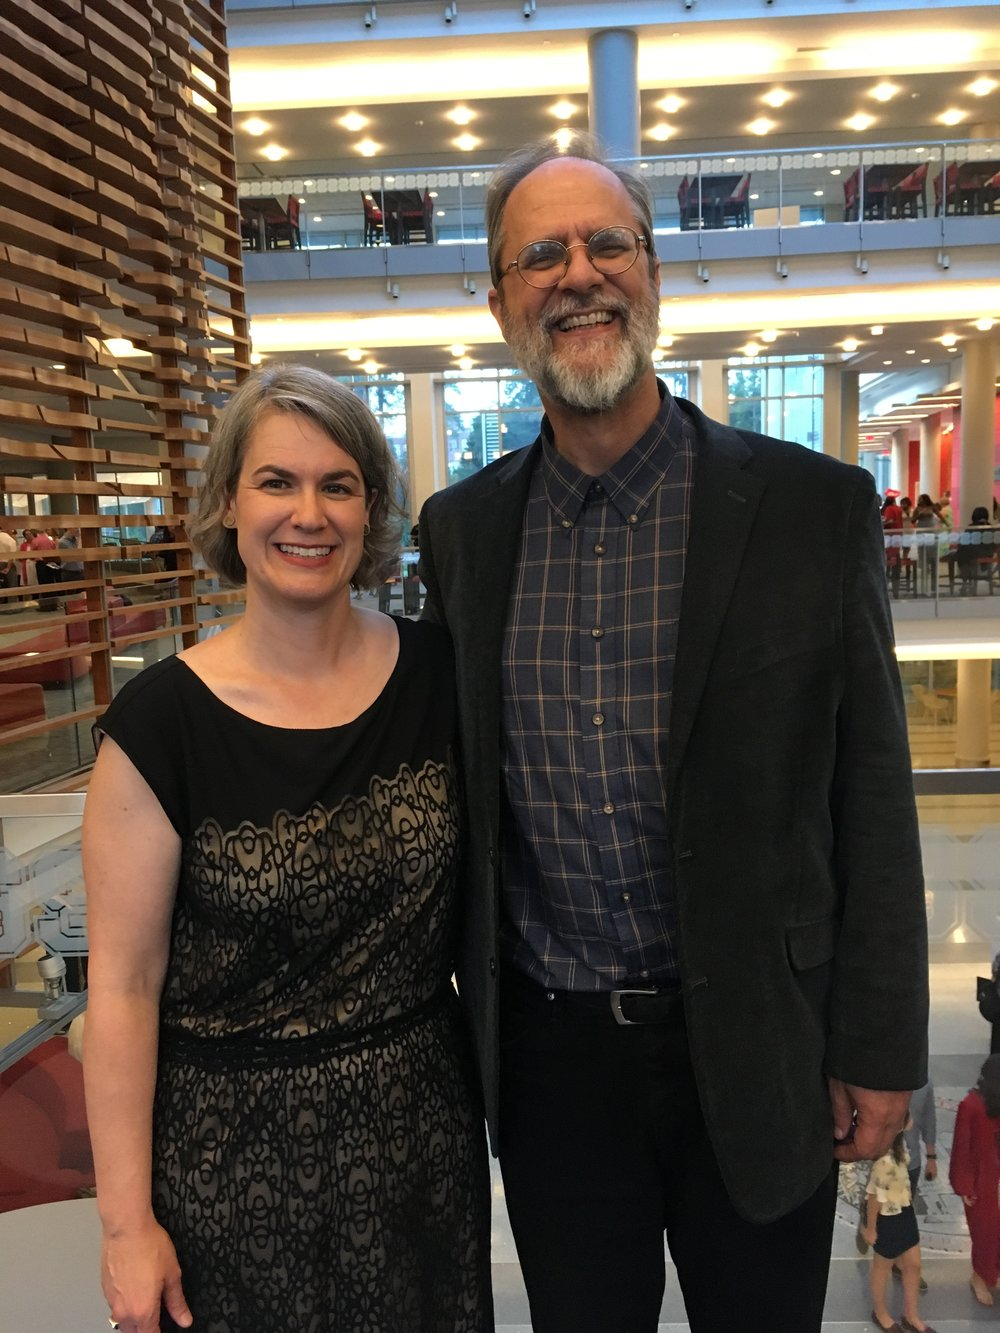 Caroline Armijo and Dr. Rodney Waschka II, Director of Art Studies